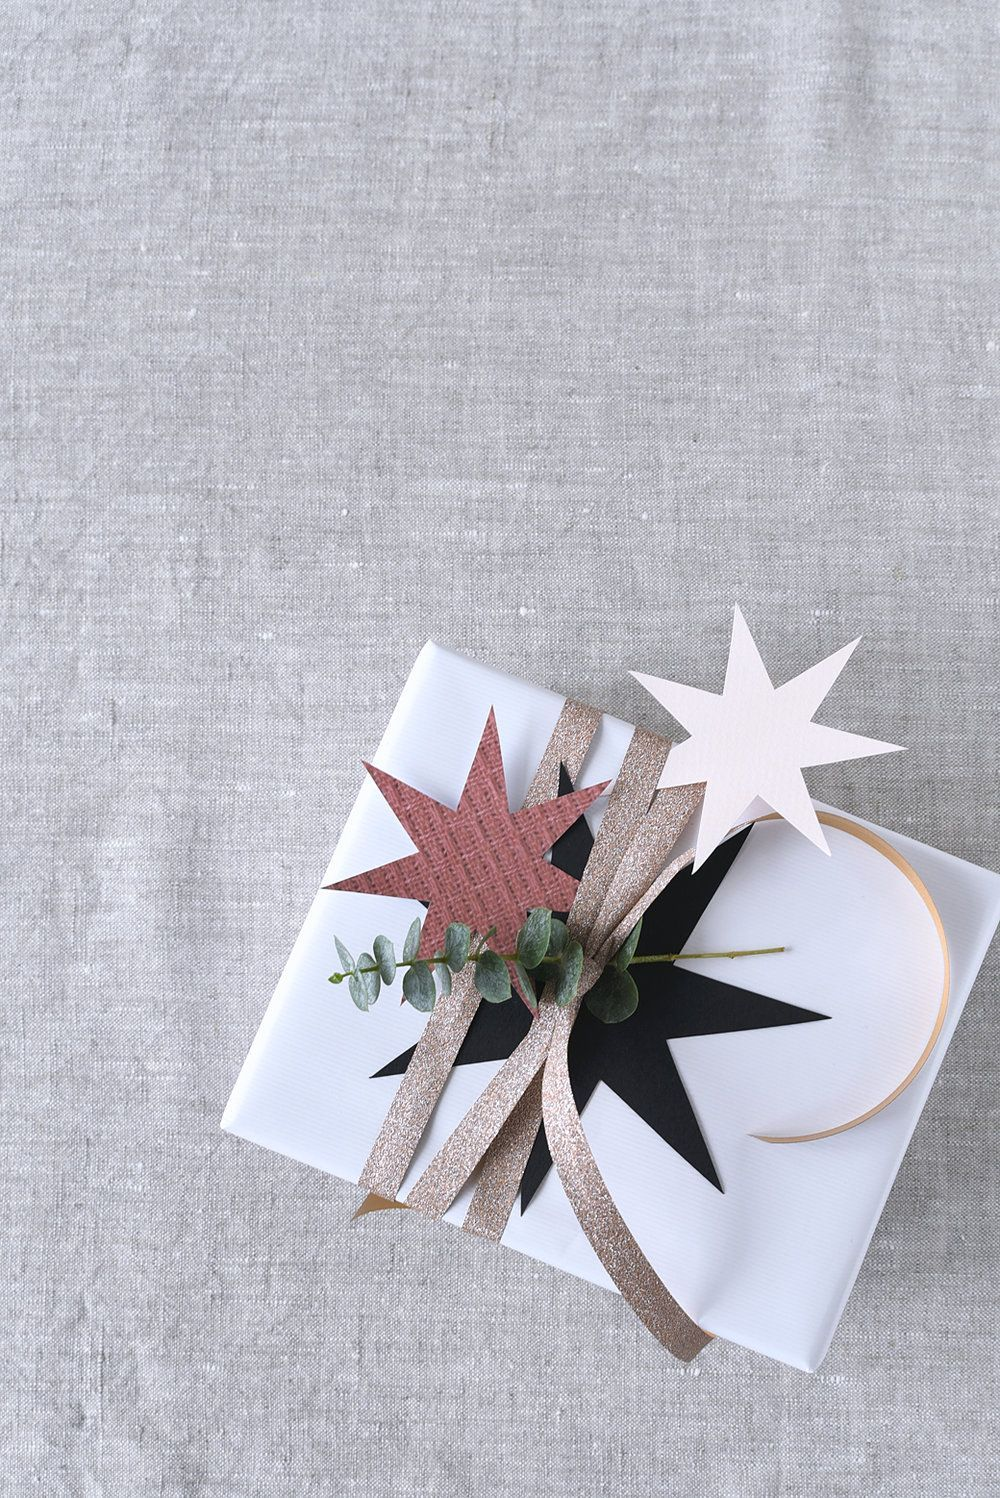 Christmas & Holiday Decorations For Parties That You'll Love - decor8 - #christmas #decor8 #decorations #holiday #parties - #HolidayDiy